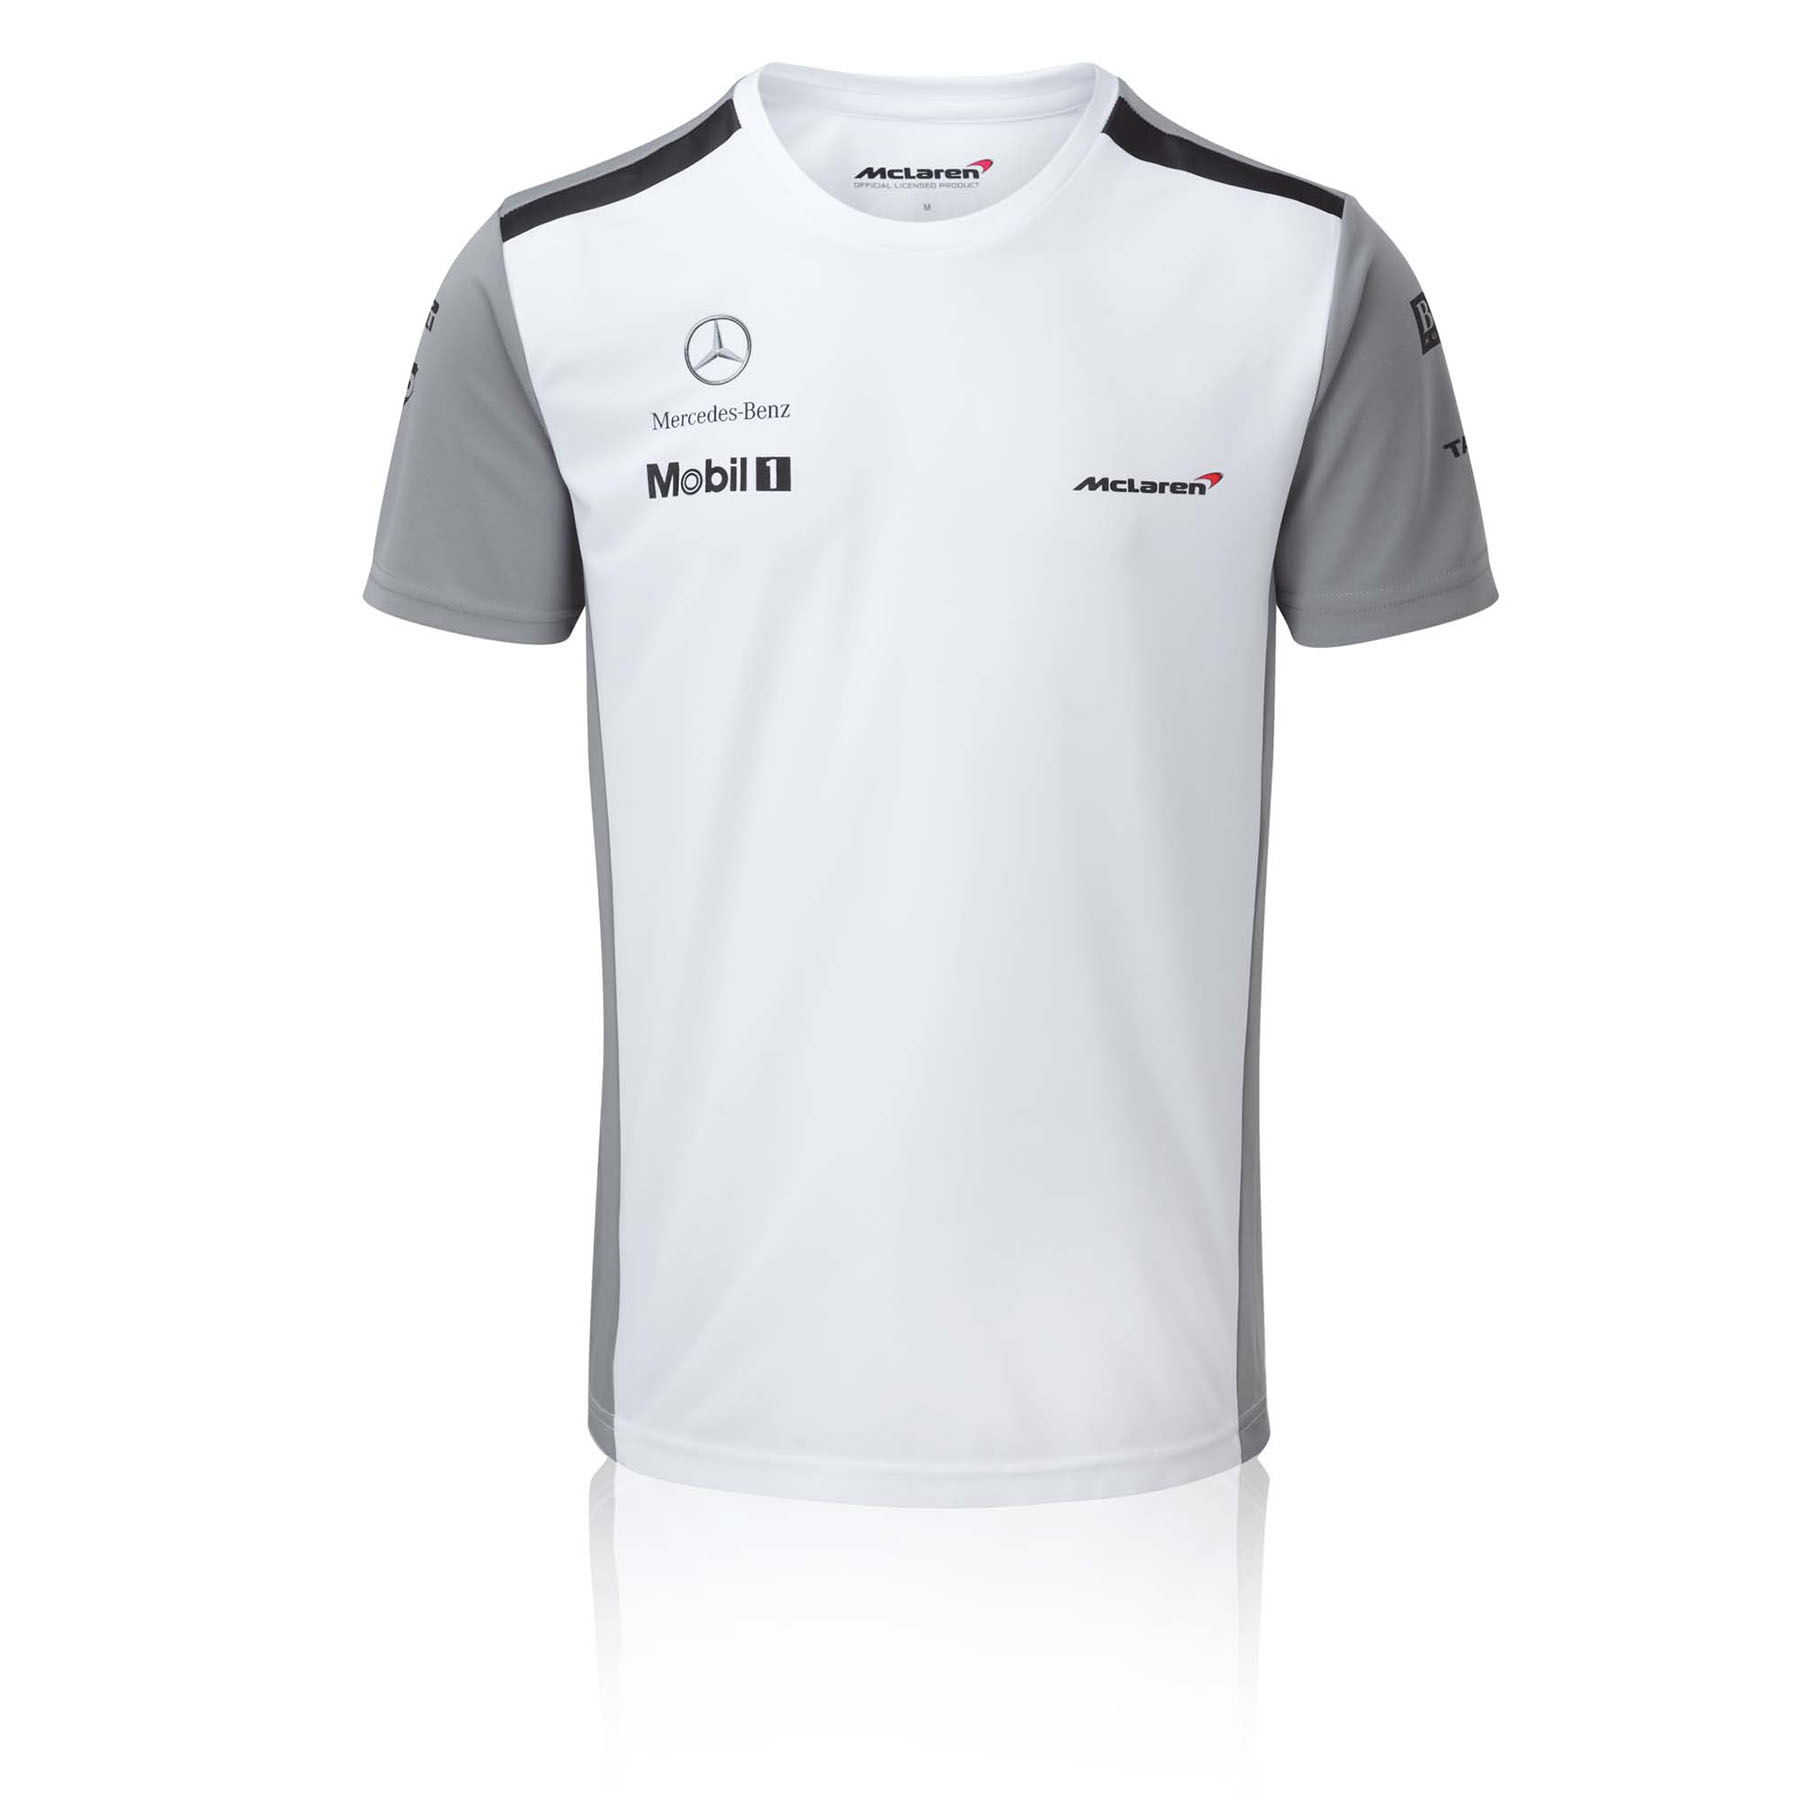 Team McLaren Technical Team T-Shirt